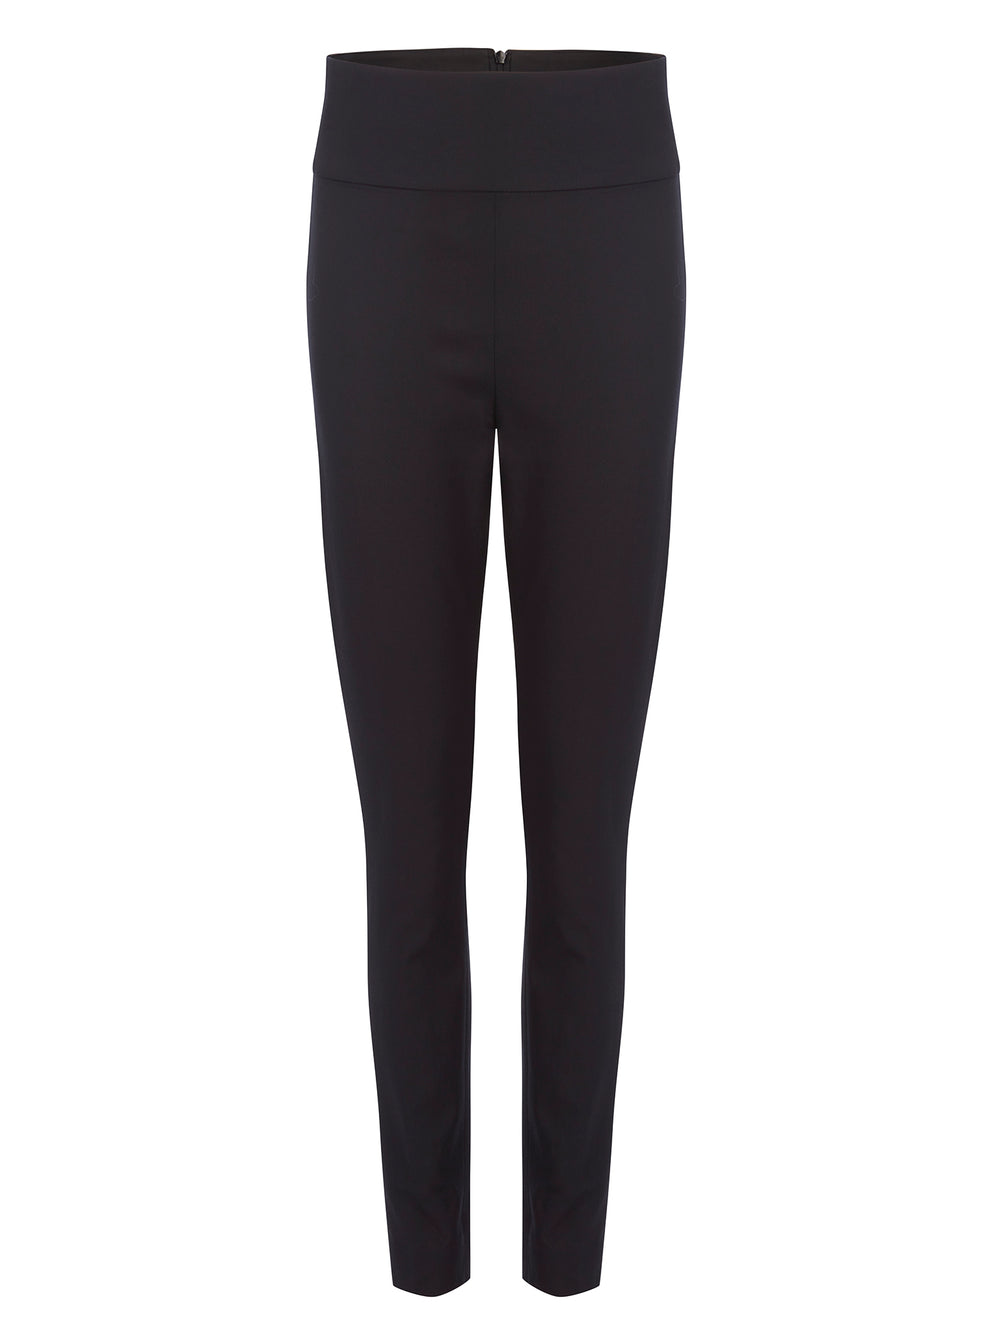 T009 _ STRUT _ Classic Black Tapered Tuxedo Trousers